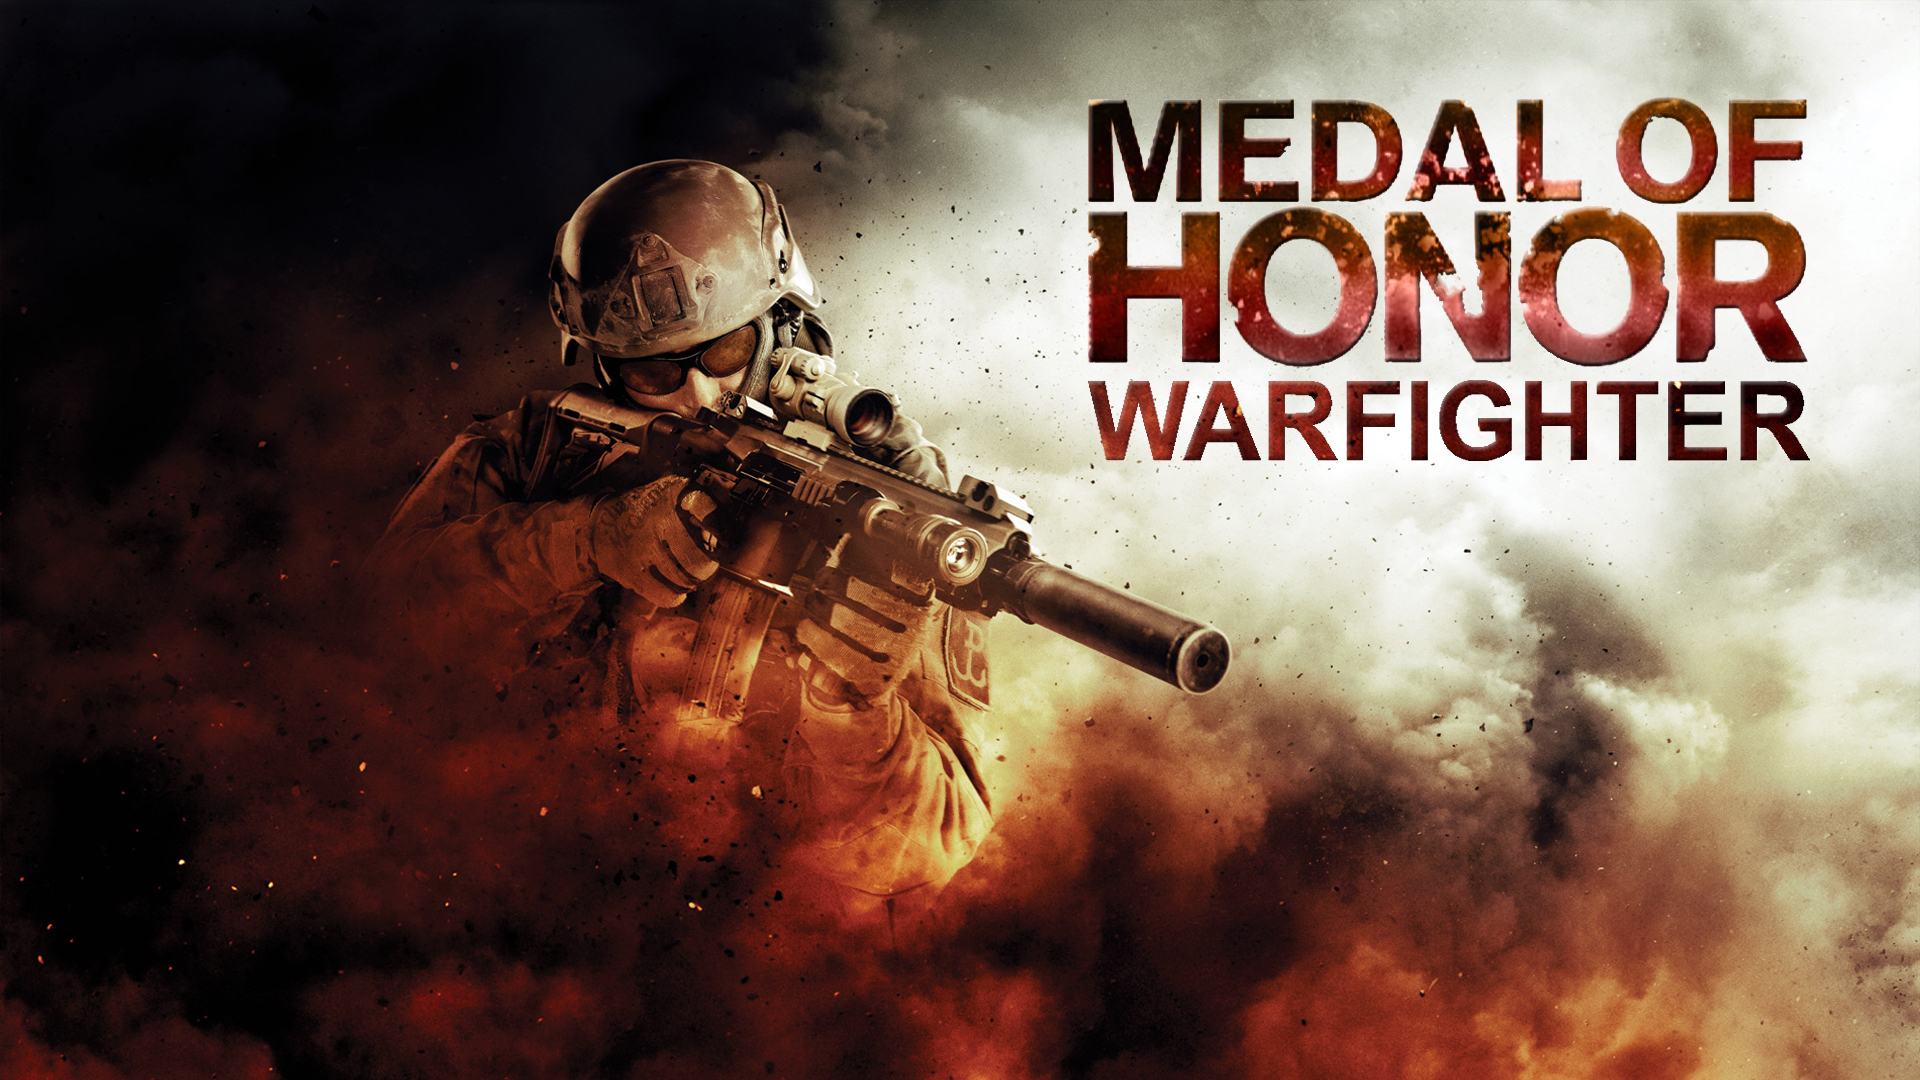 awesome medal of honor warfighter wallpaper 44276